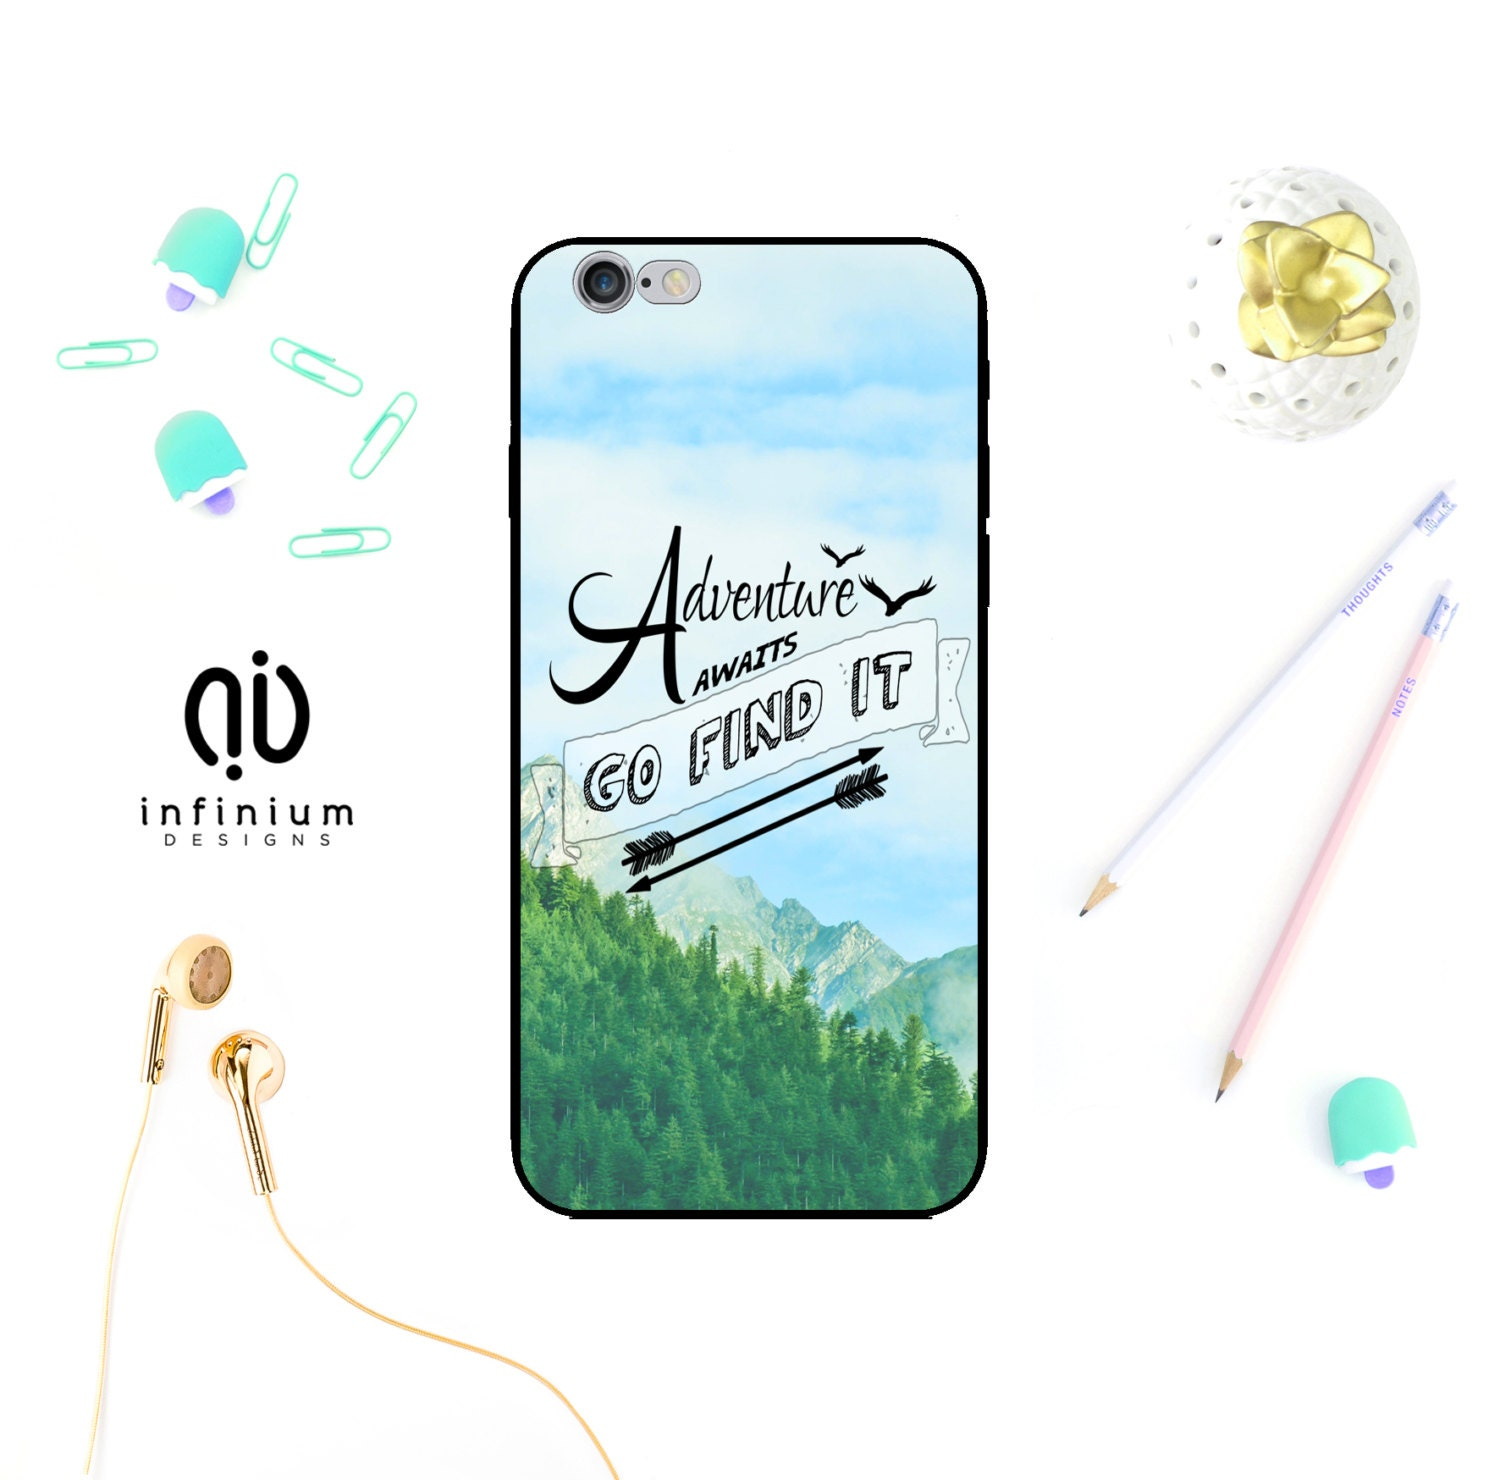 Adventure Case For iPhone 7 Samsung S8 S8 Edge S7 S7 Edge J3 J5 A5 Galaxy A3 Core Prime 7 Plus iPhone  6S SE 5S  iPod Touch 6